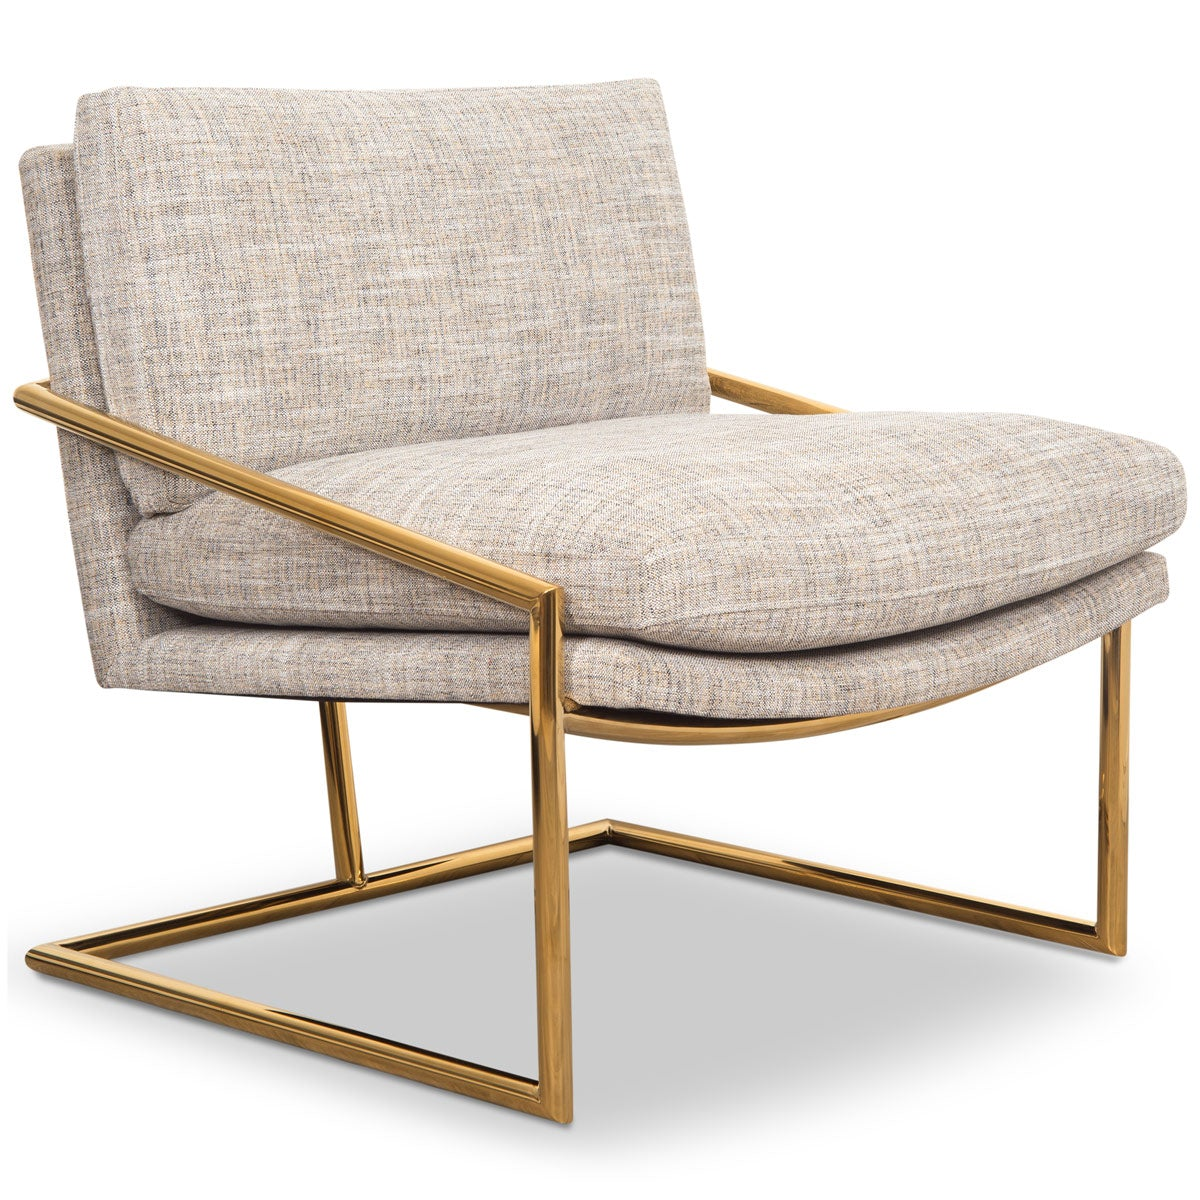 Hampton Chair in Linen - ModShop1.com